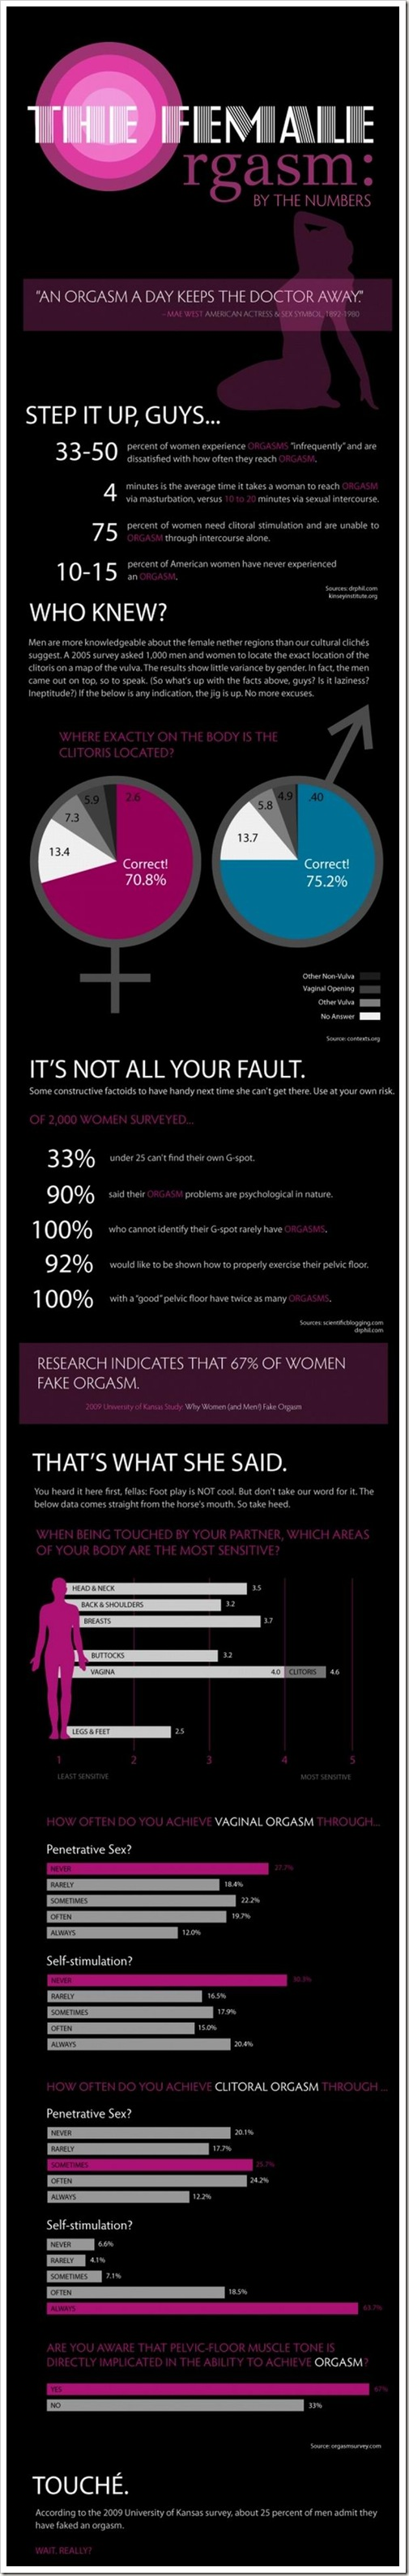 female-orgasm-by-the-numbers1